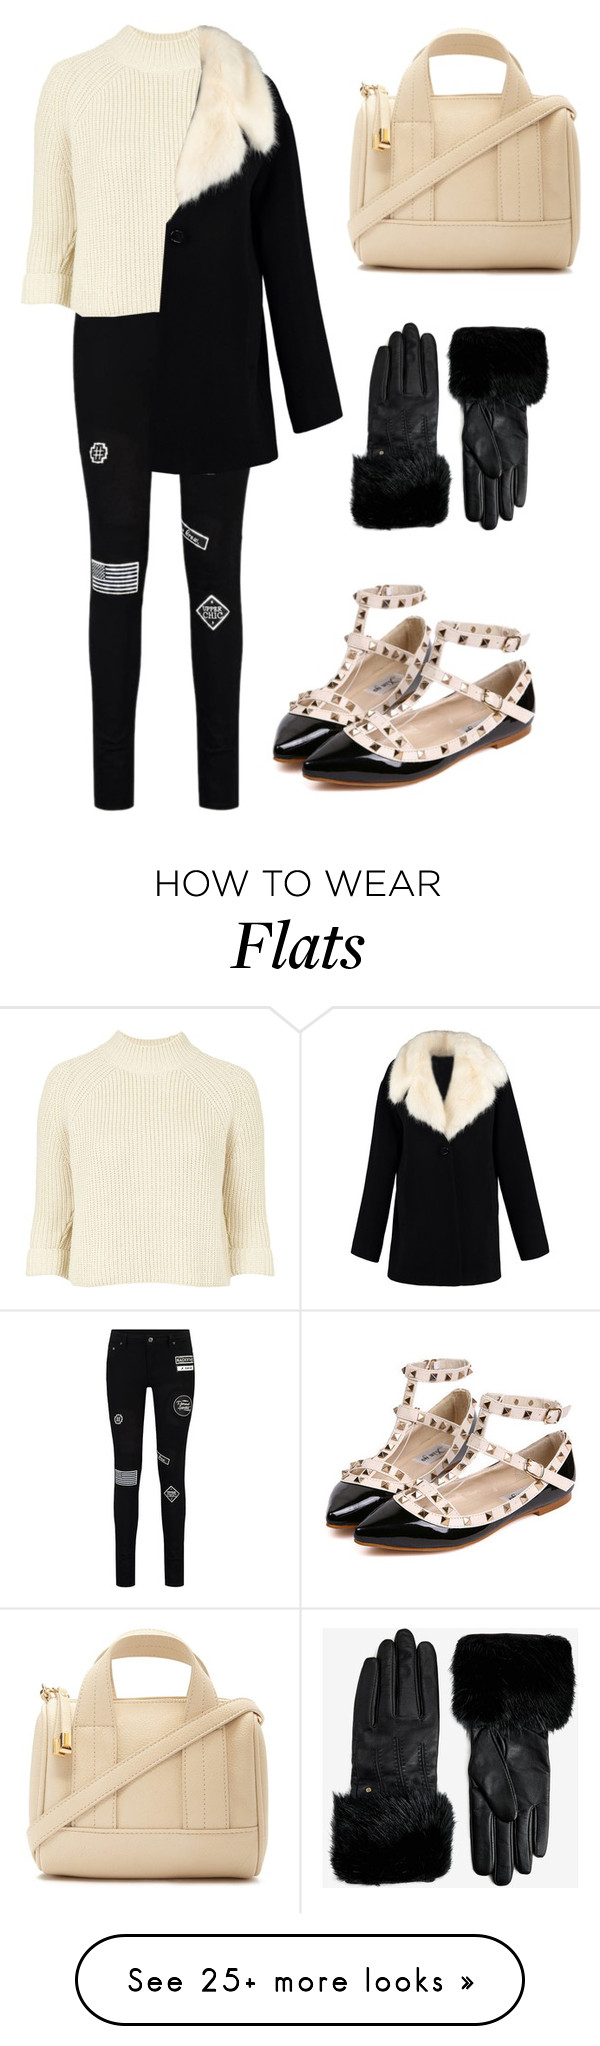 """"""""""" by arinak-1 on Polyvore featuring Topshop, By Sun, Forever 21, Ted Baker, women's clothing, women, female, woman, misses and juniors"""